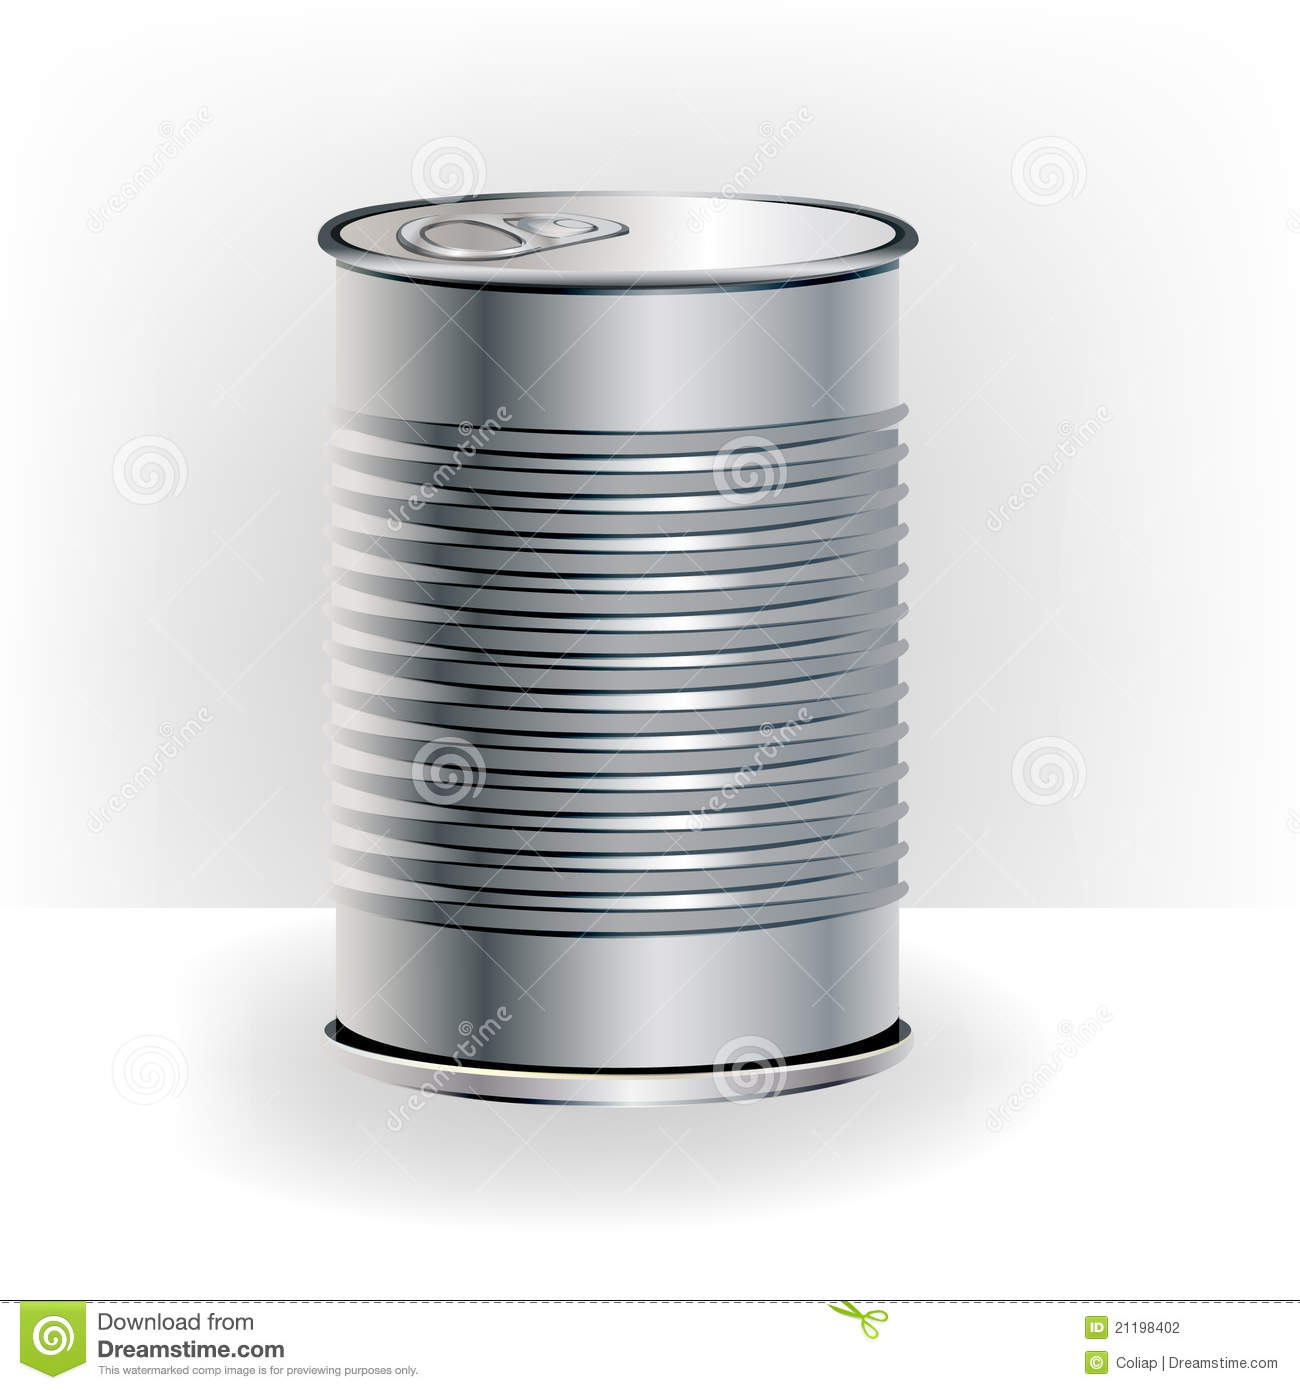 Single aluminum food can stock photography image 21198402 for Aluminum cuisine